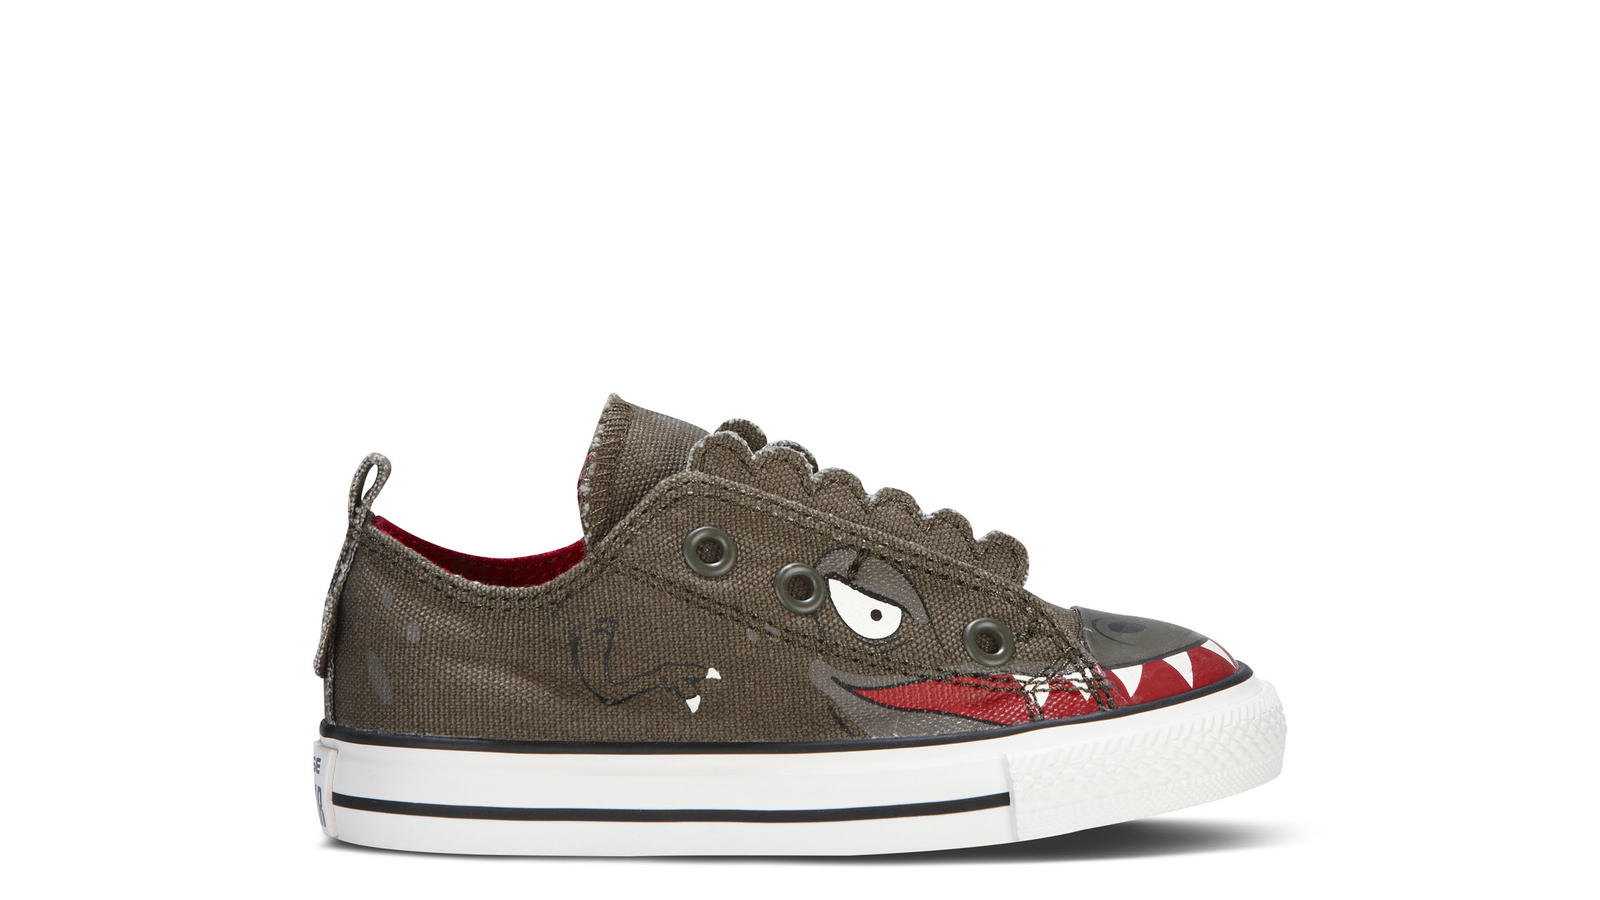 d33372f691e6 Converse Announces Holiday 2013 Footwear Collections - Nike News